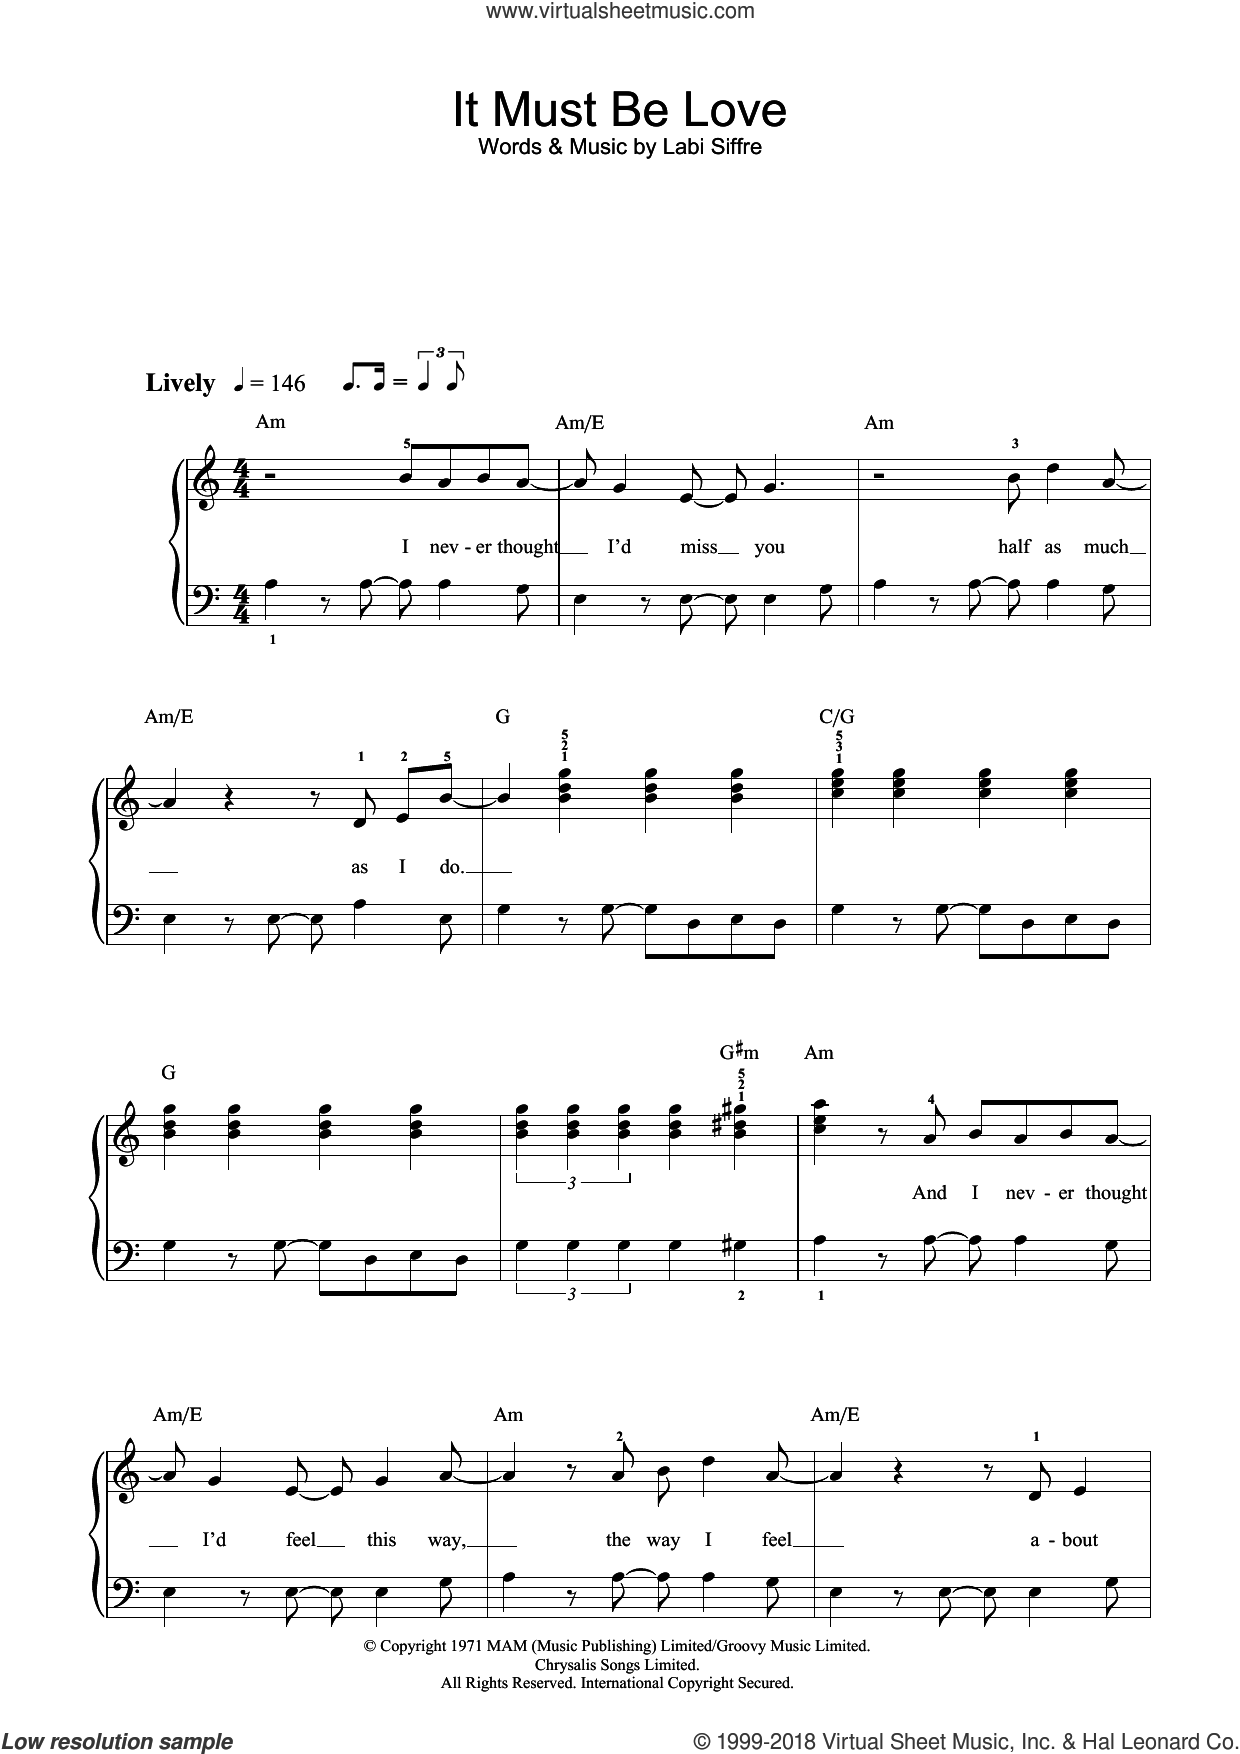 It Must Be Love sheet music for voice, piano or guitar by Labi Siffre